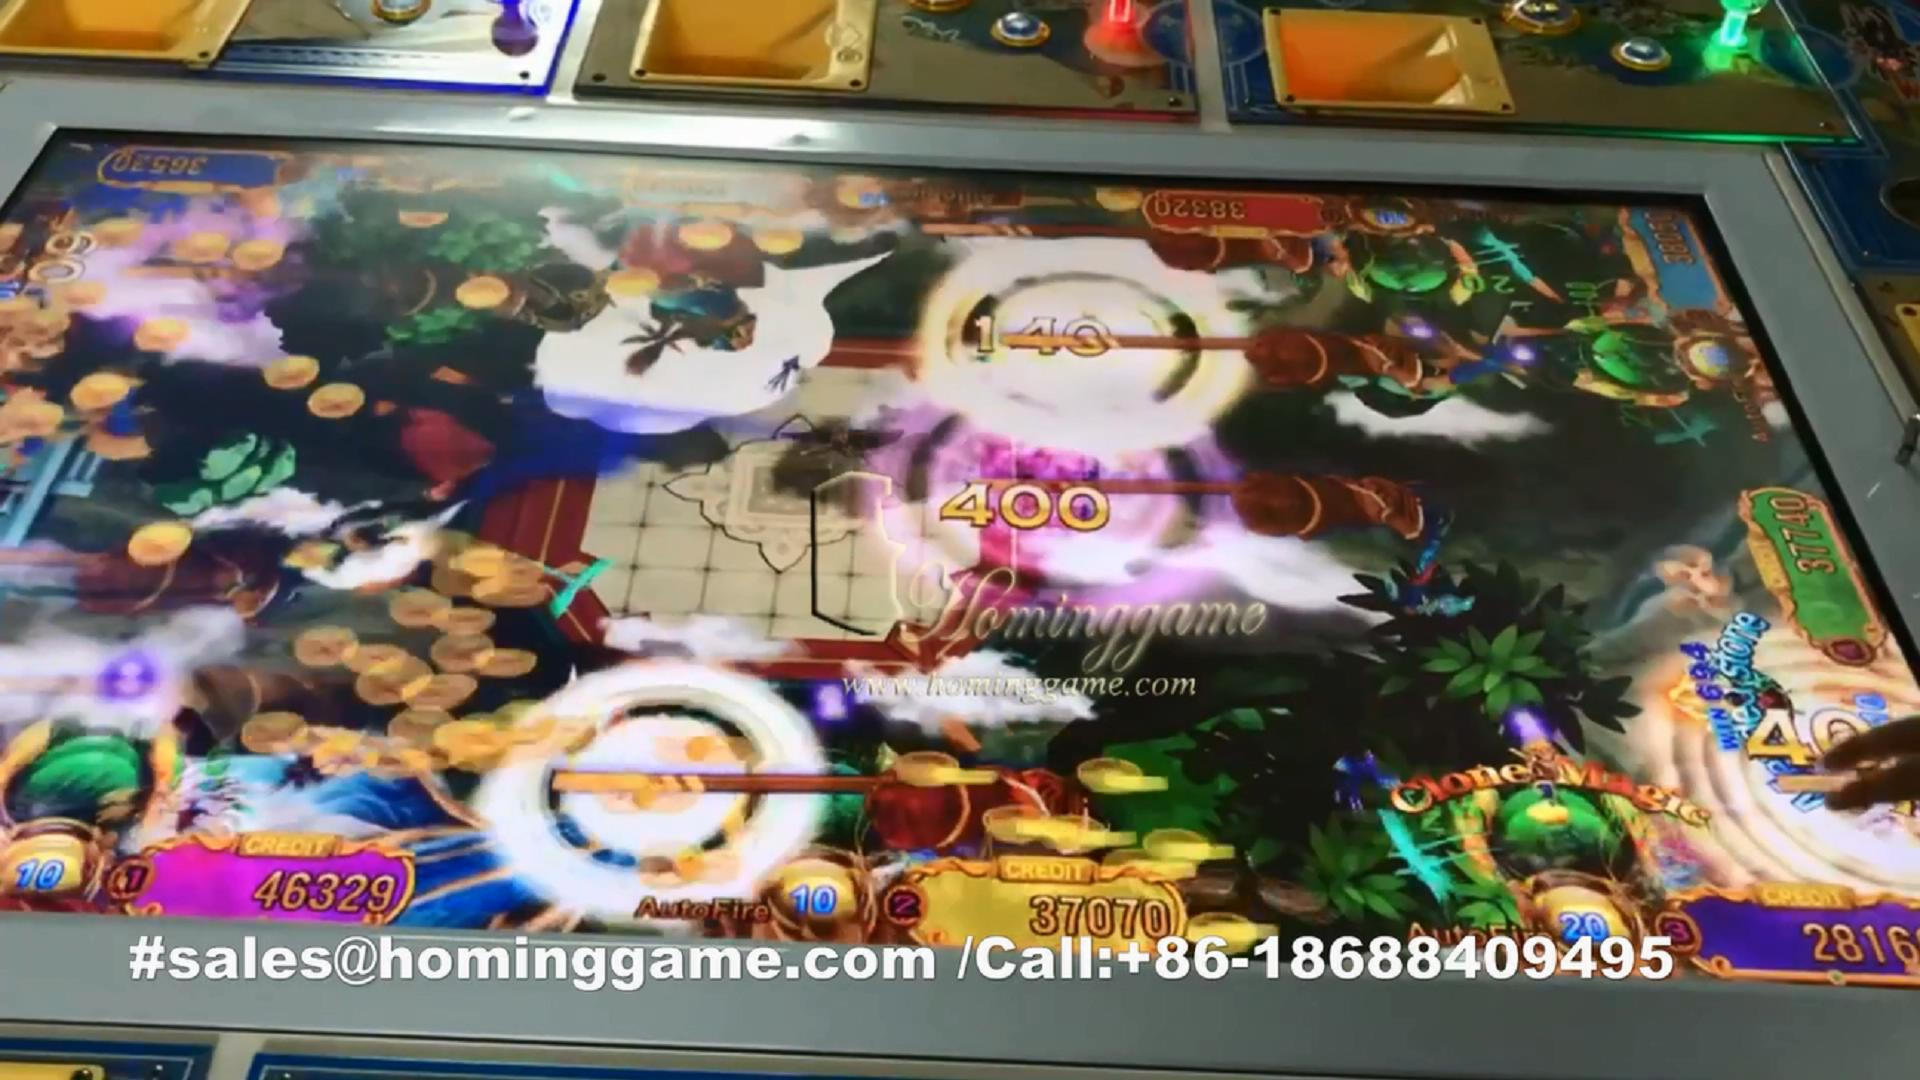 Fishing Game Machine,Fishing game machine,fishing game,3D Kong Fishing game machine,3D KONG Fishing Arcade Table Game Machine,Kong Fishing table Game Machine,2018 Newest 2 IN 1 Jackpot Fishing Game,Kong,Kong Fishing Game Machine,Kong Fishing Table Game Machine,Kong Jackpot Fishing Game Machine,Jackpot Fishing Game Machine,Fishing Game Machine,Fishing Table Game Machine,Dragon King Fishing Game Machine,WuKong Fishing Game Machine,Coin operated Fishing Game Machine,Game Machine,Gaming Machine,Gambling Machine,Electrical Slot Gaming Machine,Amusement Park Game Euipment,Family Entertainment,Entertainment Game Machine,Arcade Game Machine